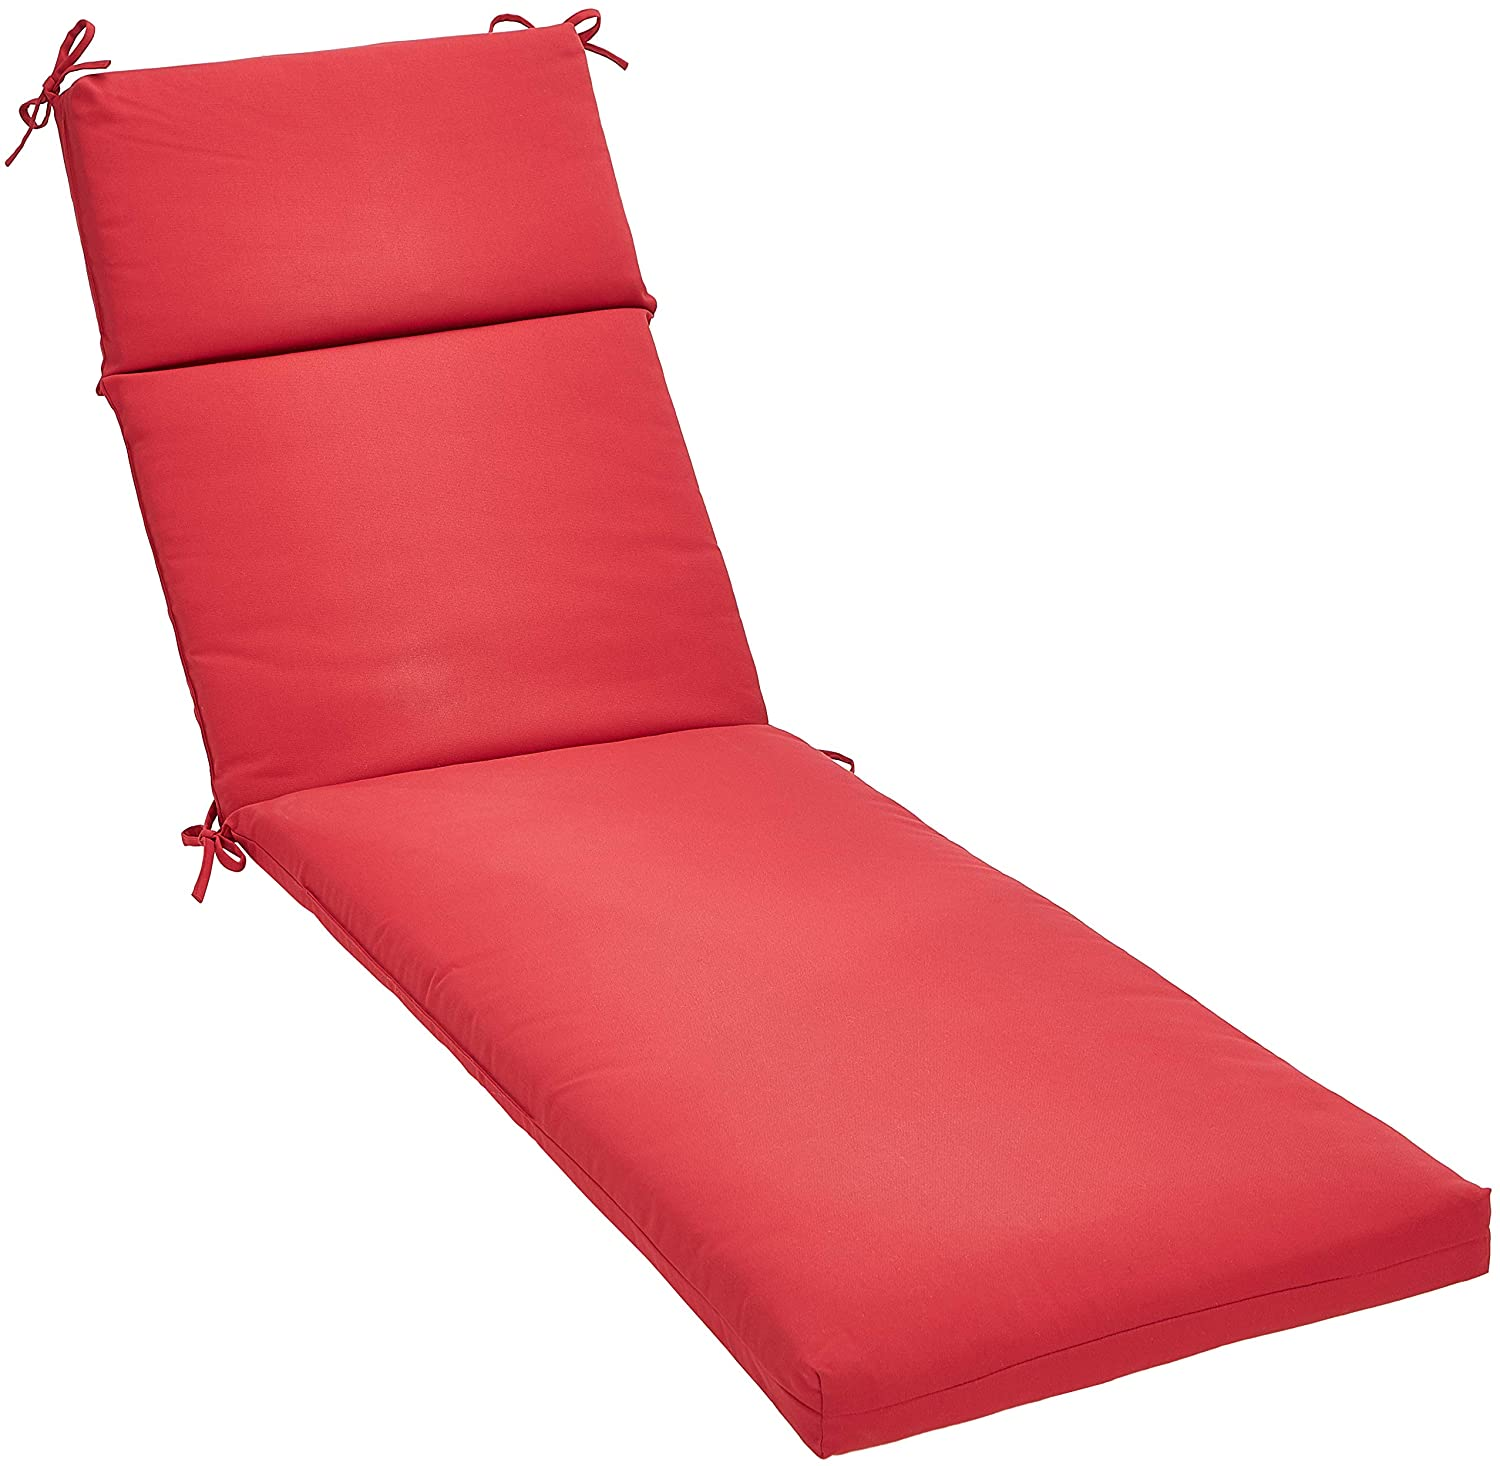 AmazonBasics Outdoor Lounger Patio Cushion - Red